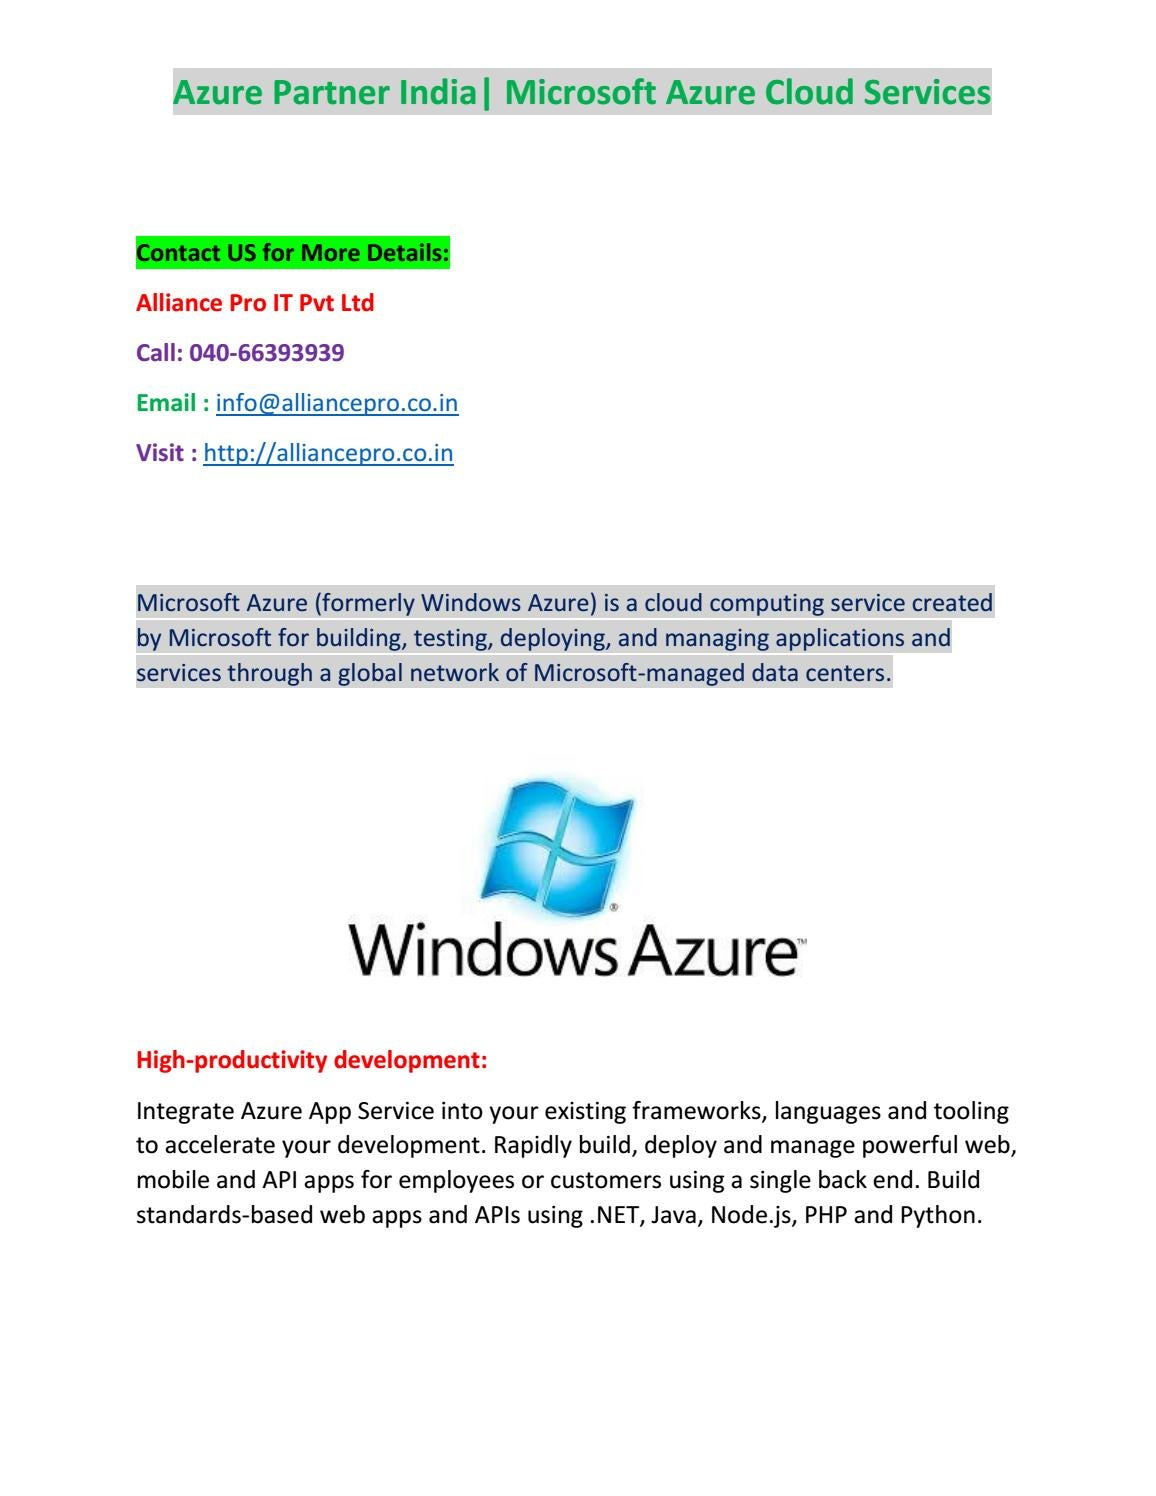 Windows Azure Cloud Service Provider in India-Alliance Pro by